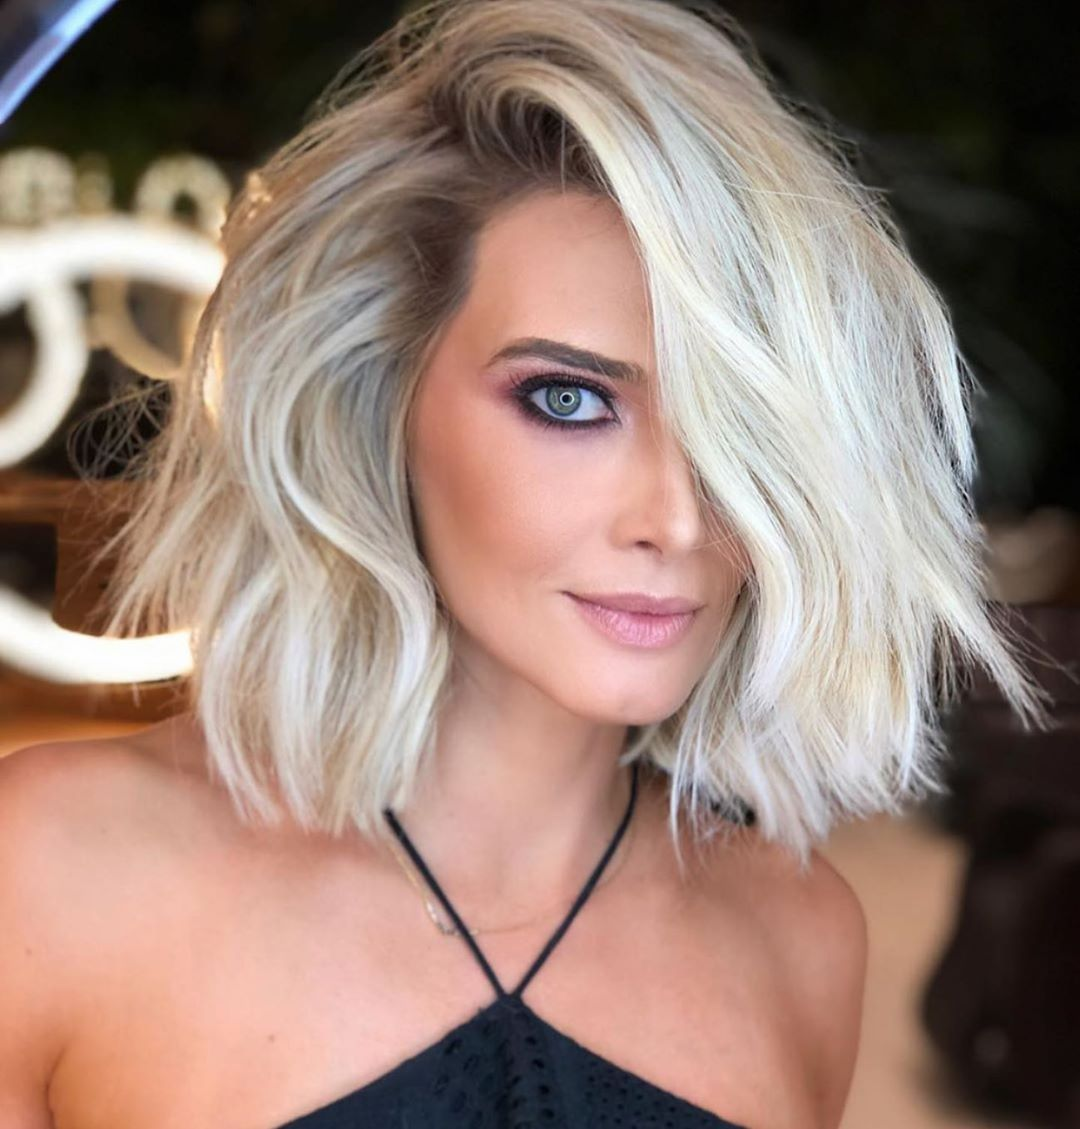 20 most trendy hairstyles for women over 40 to look